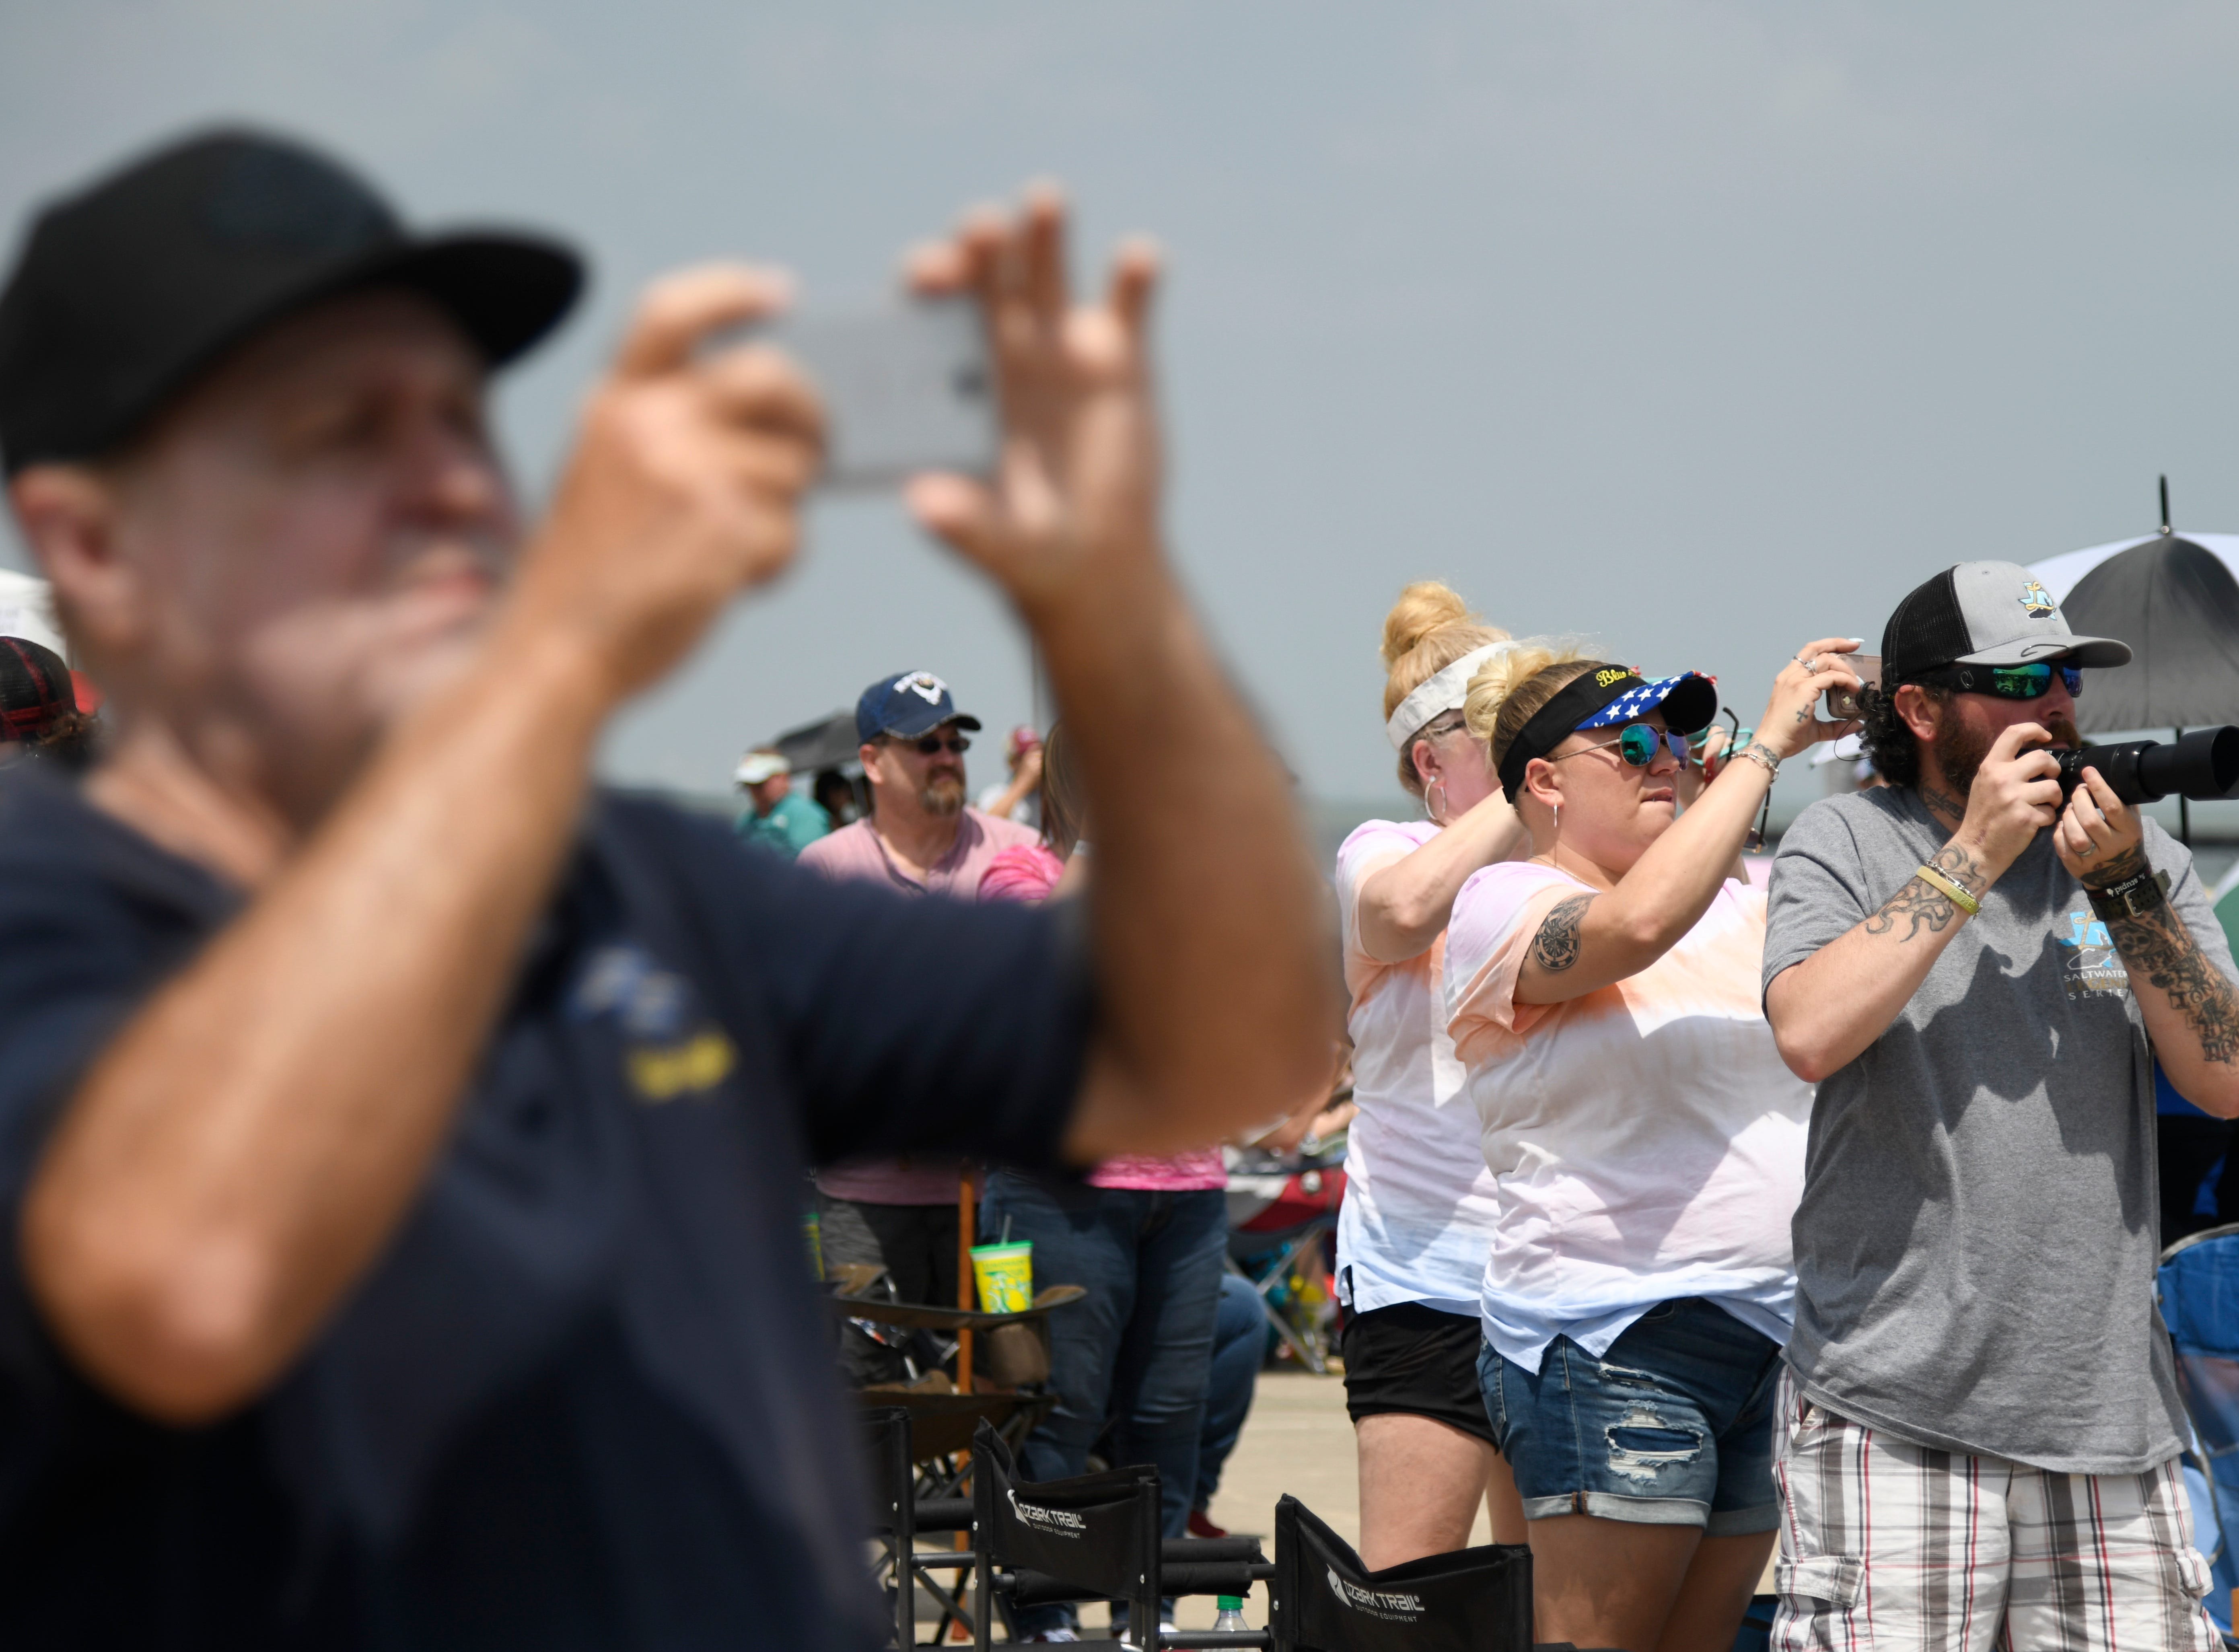 Spectators film various performances during the Wings Over South Texas Air Show, Saturday, April 13, 2019, at NAS Corpus Christi.